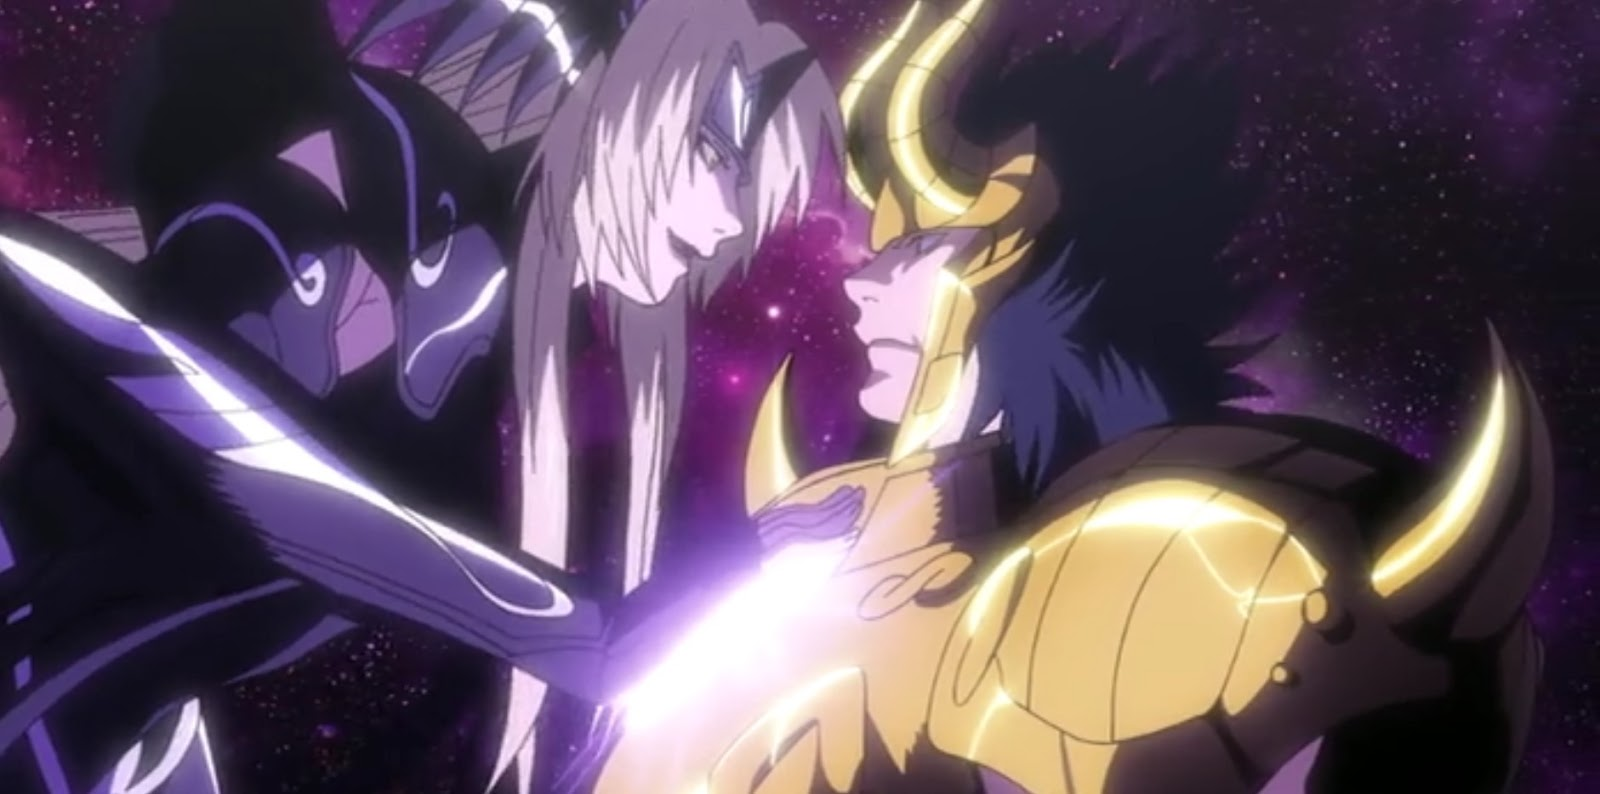 Saint Seiya: The Lost Canvas Episodio 20 Dublado